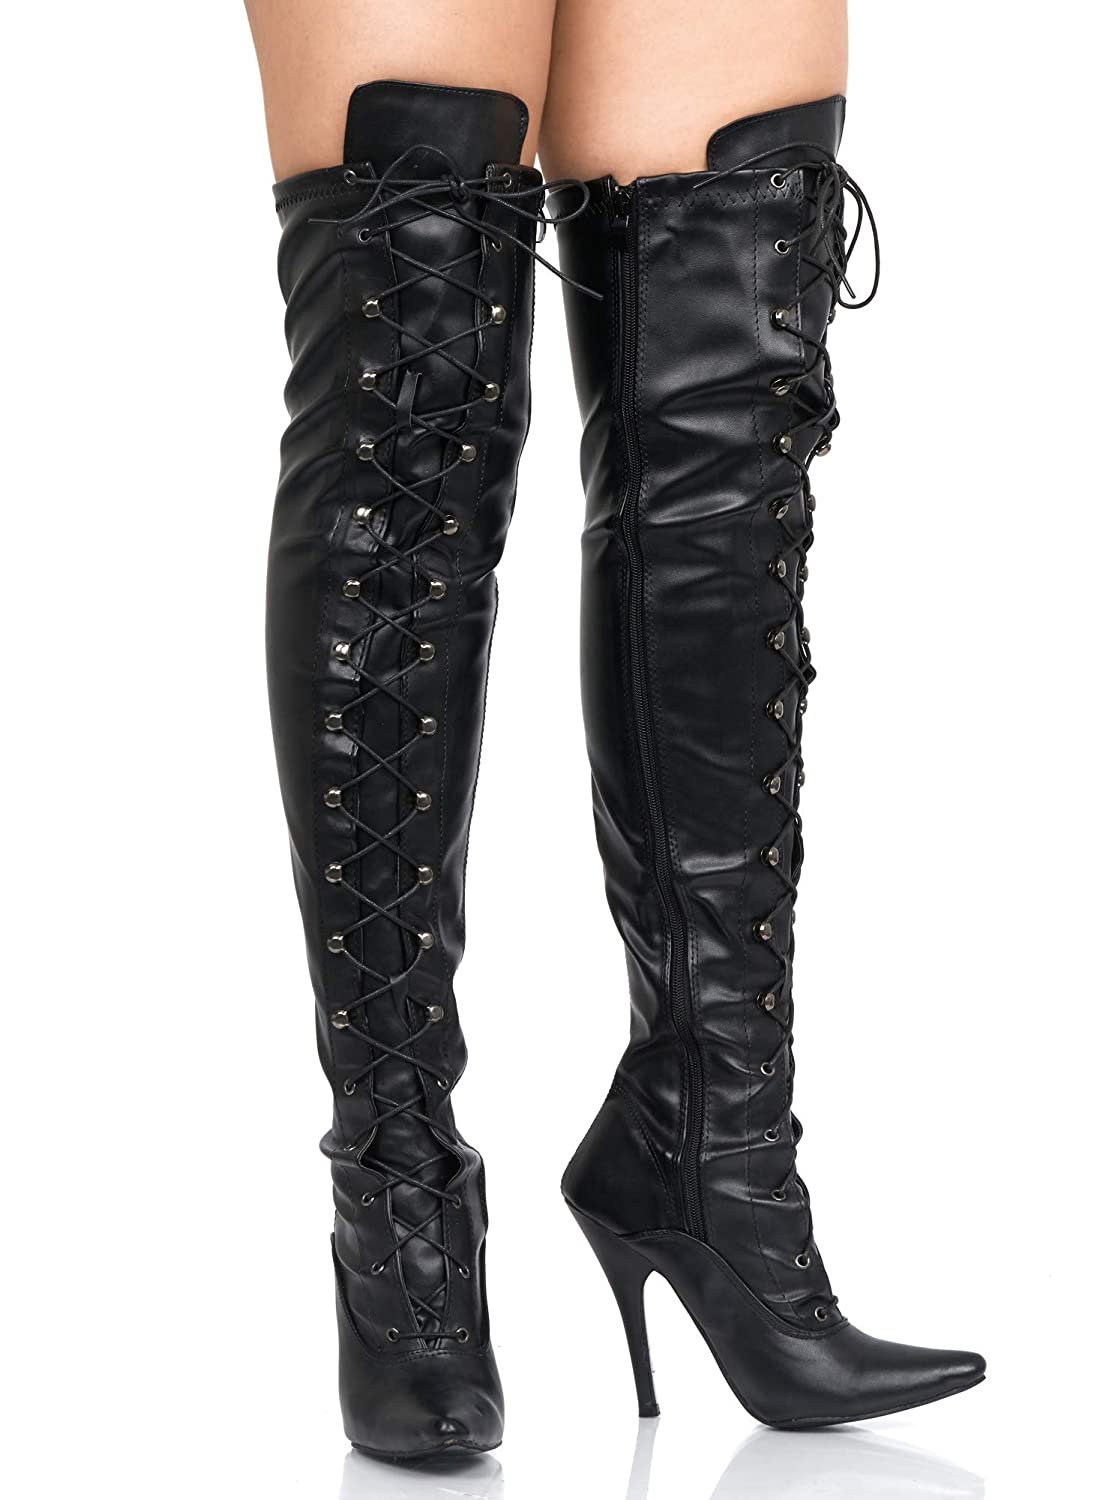 f7006e8b79ac Mens Black Over The Knee Thigh HIGH Sexy Stiletto Heel Fetish Kinky Boots  Size 9 10 11 12 Various Designs  Amazon.co.uk  Shoes   Bags